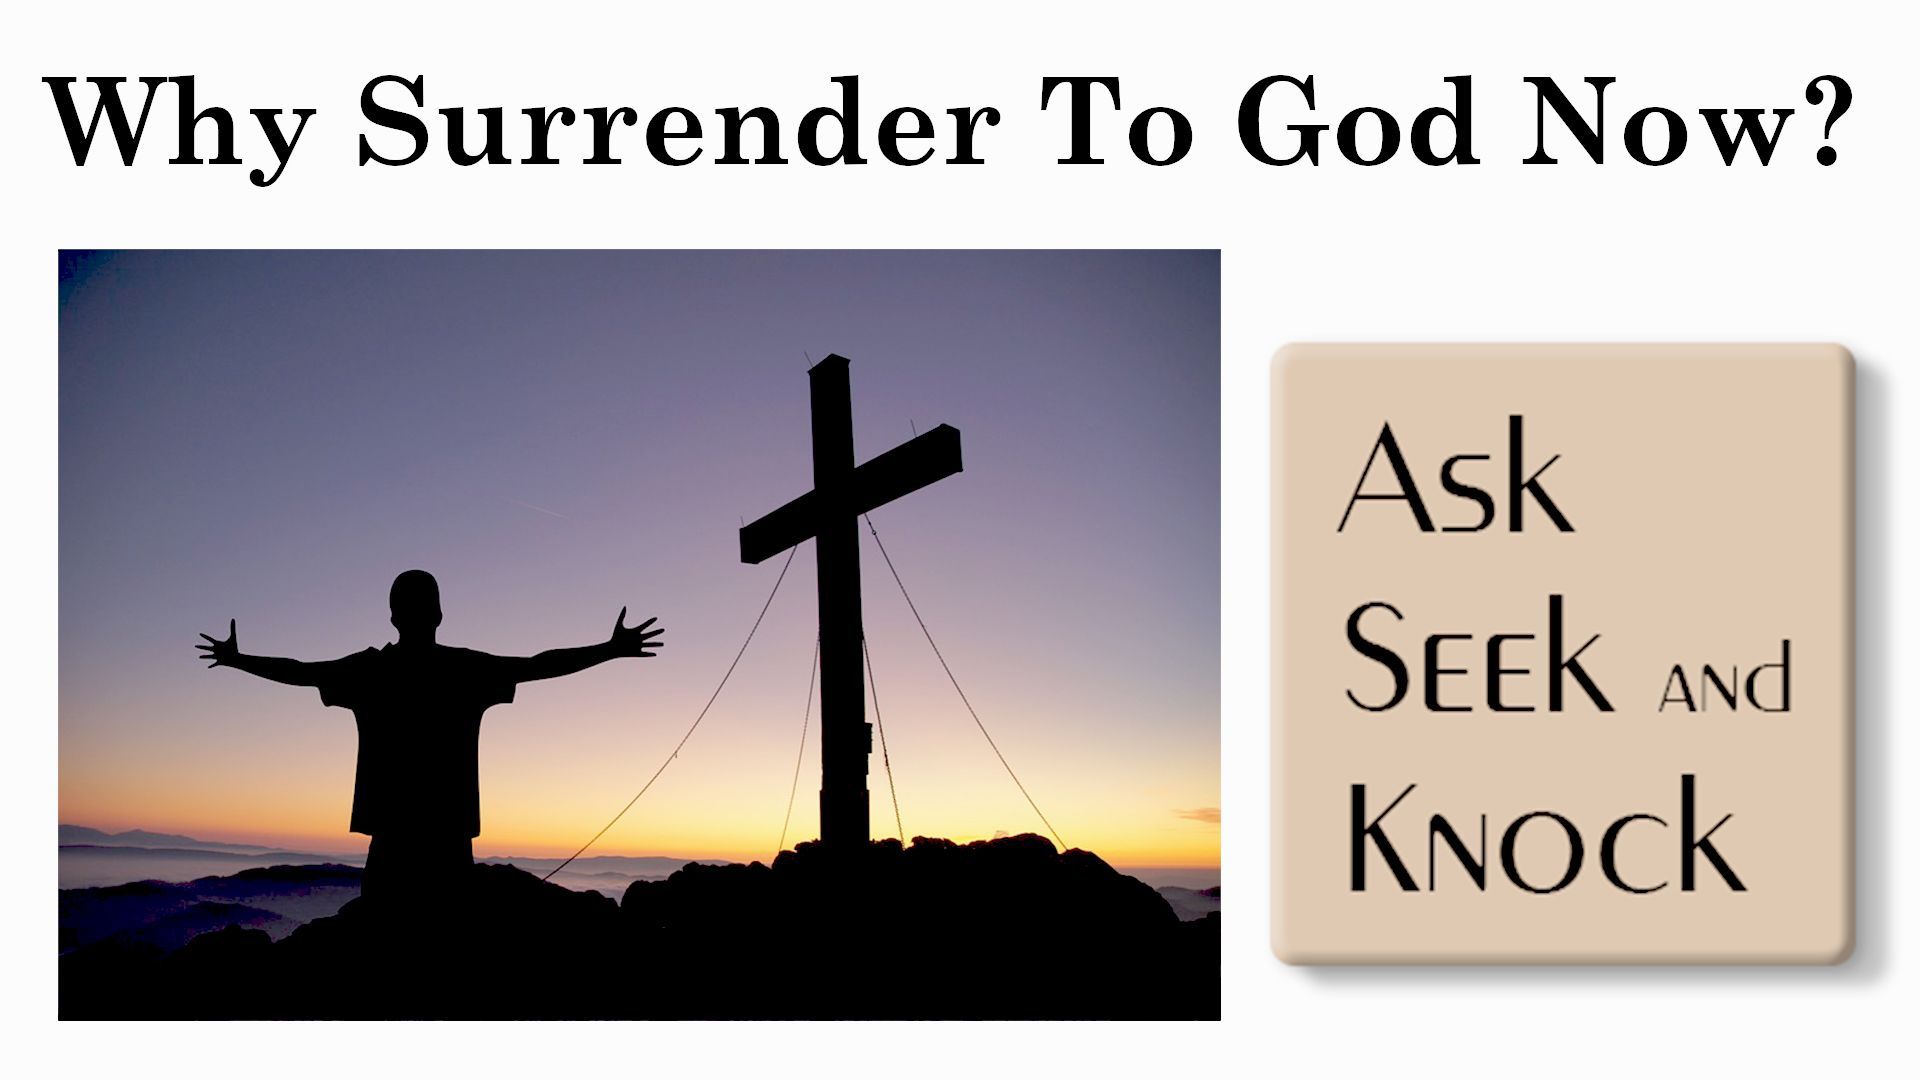 What does the Bible say about surrendering our lives to